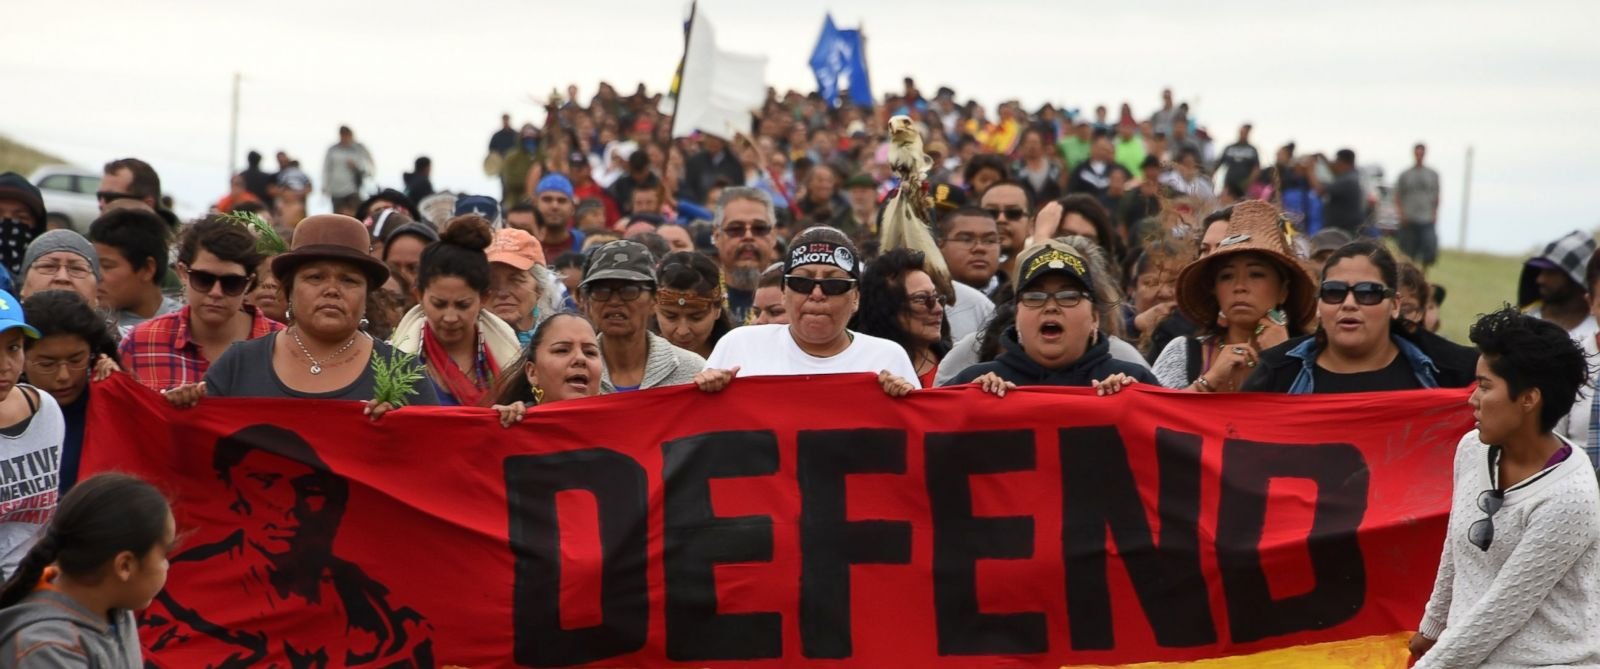 PHOTO: Native Americans march to a burial ground sacred site that was disturbed by bulldozers building the Dakota Access Pipeline (DAPL), Sept. 4, 2016 near Cannon Ball, North Dakota.